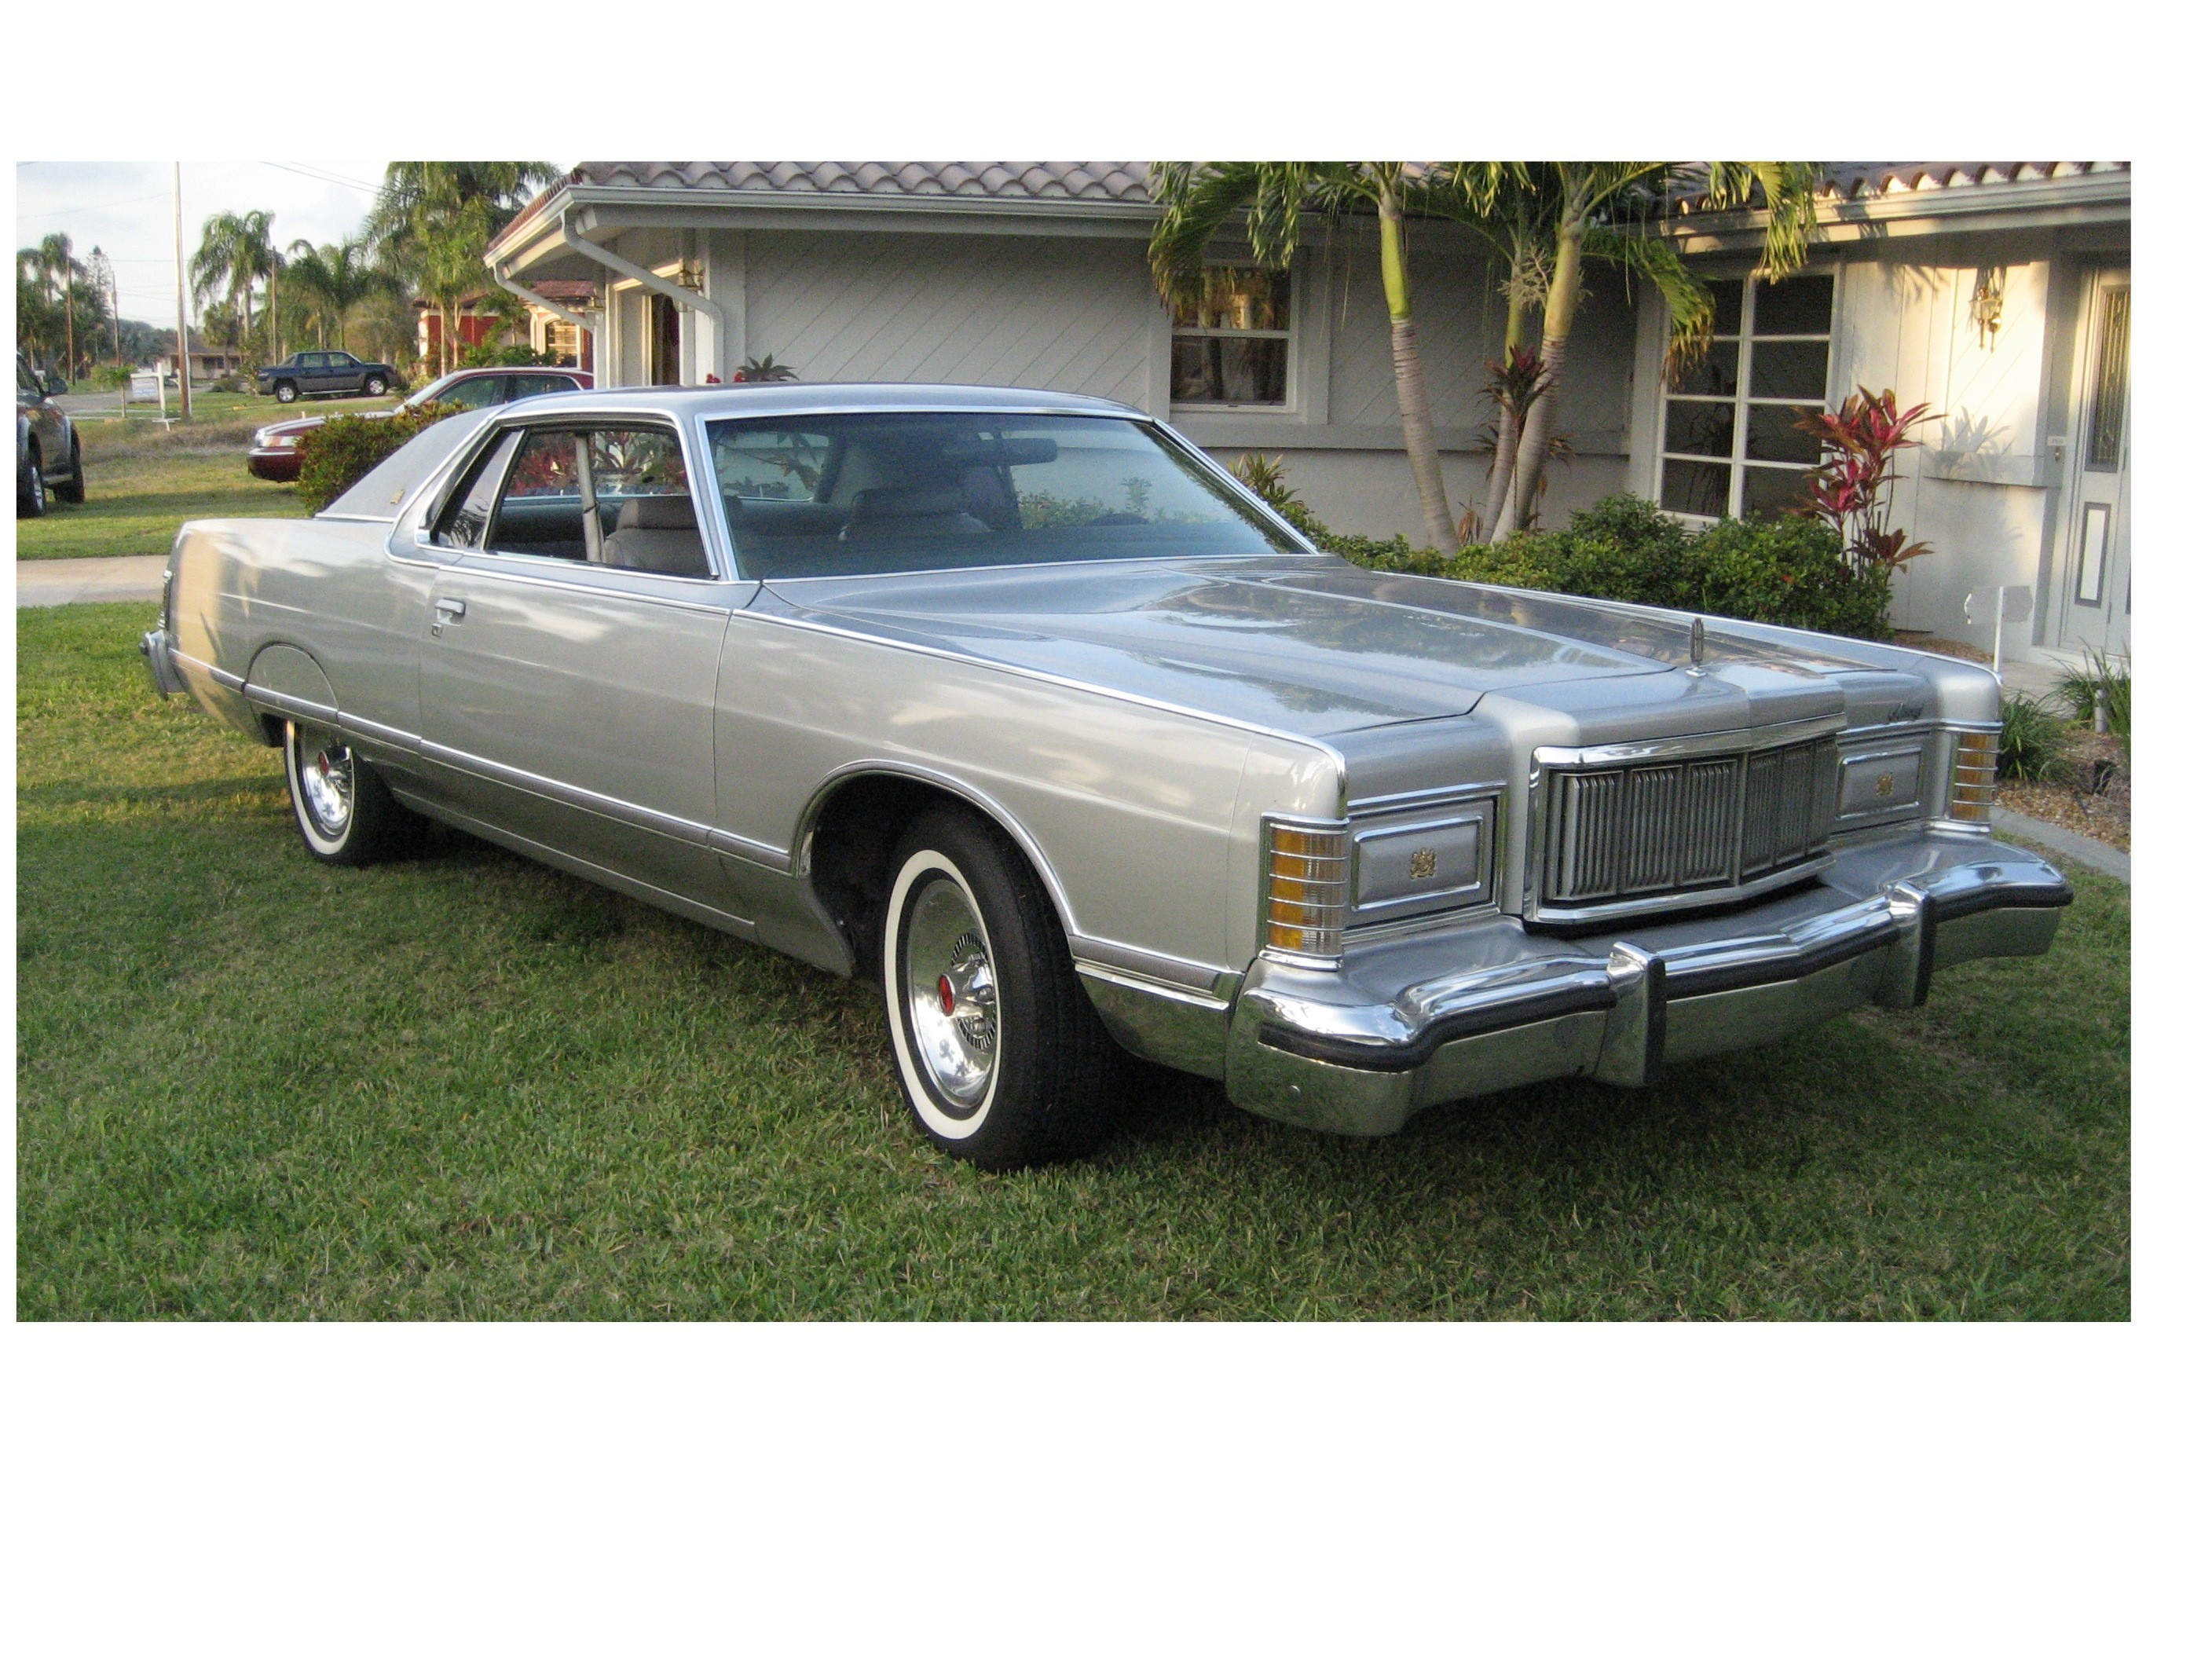 56FairlaneMan 1978 Mercury Grand Marquis 13694872